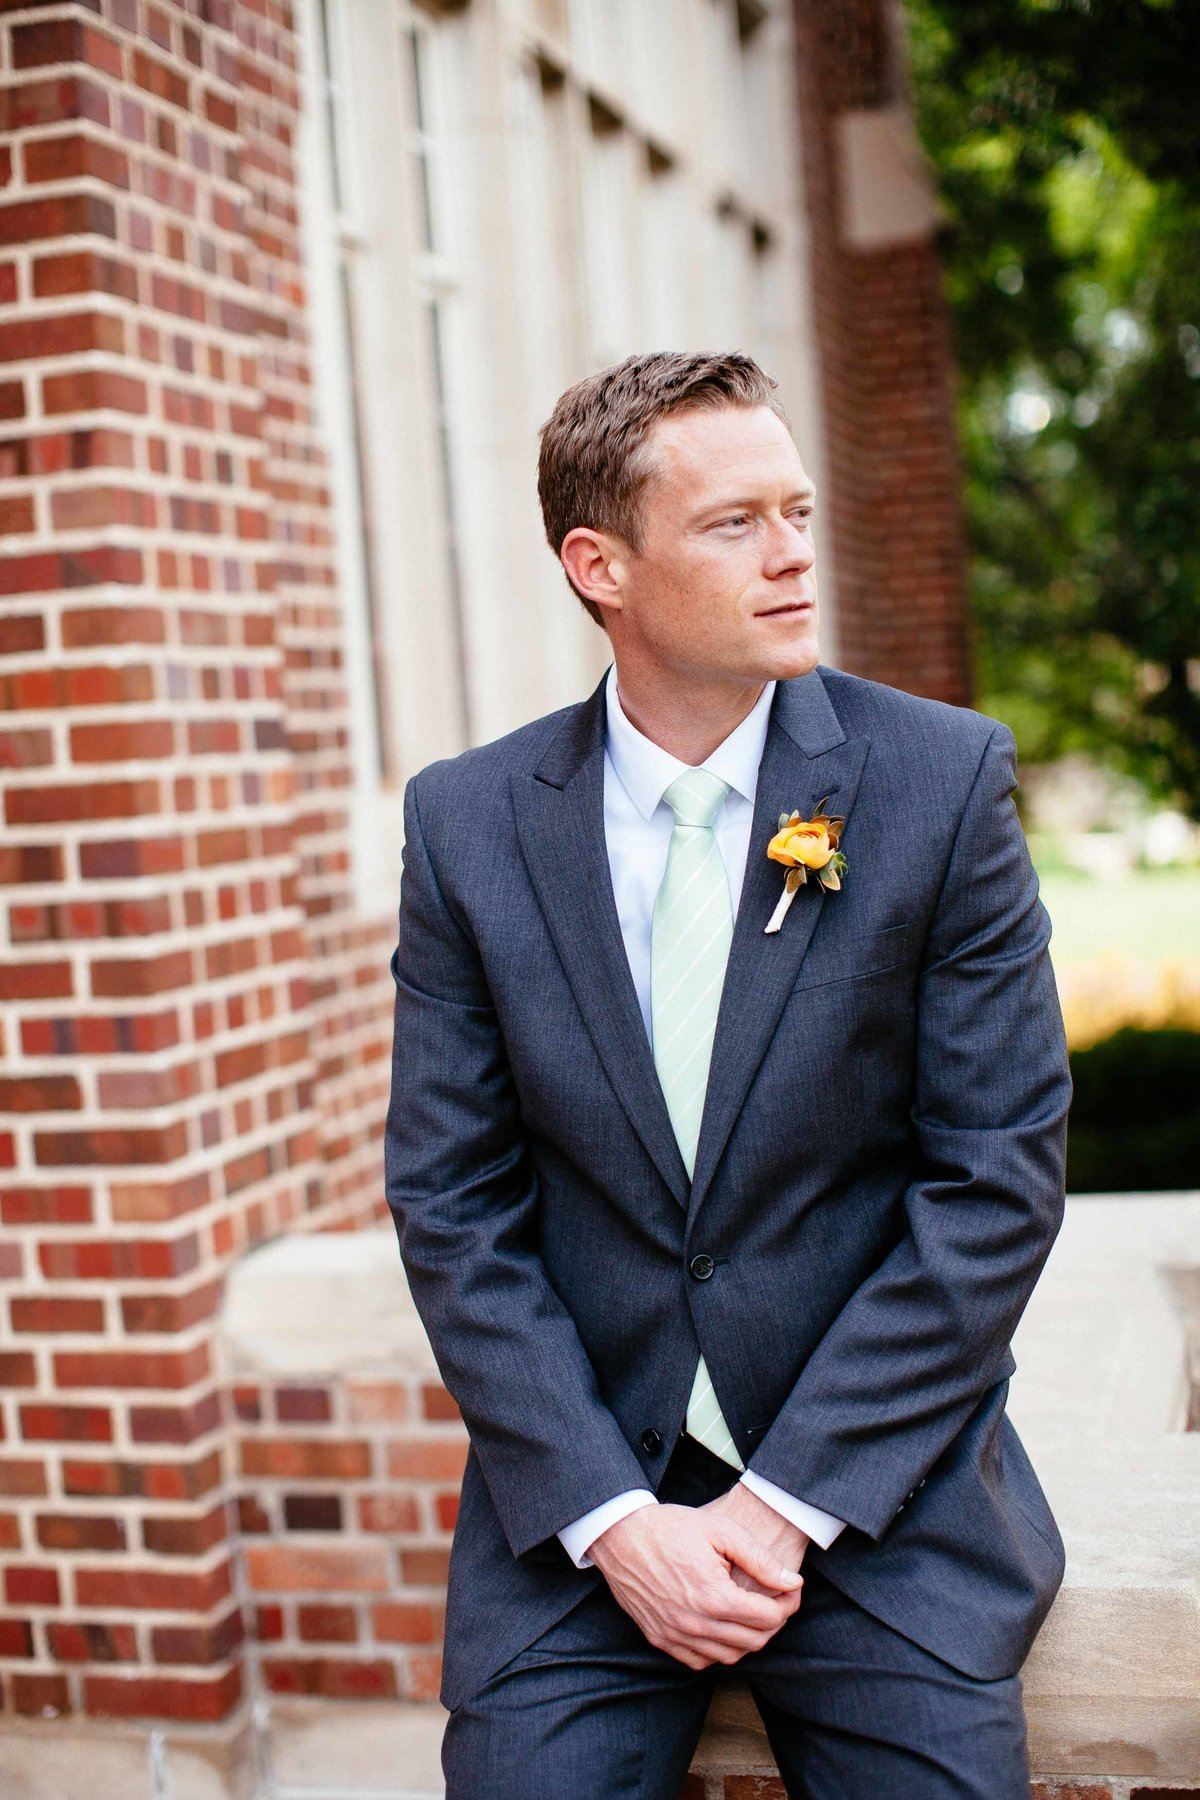 A groom in his suit sitting on a brick wall.